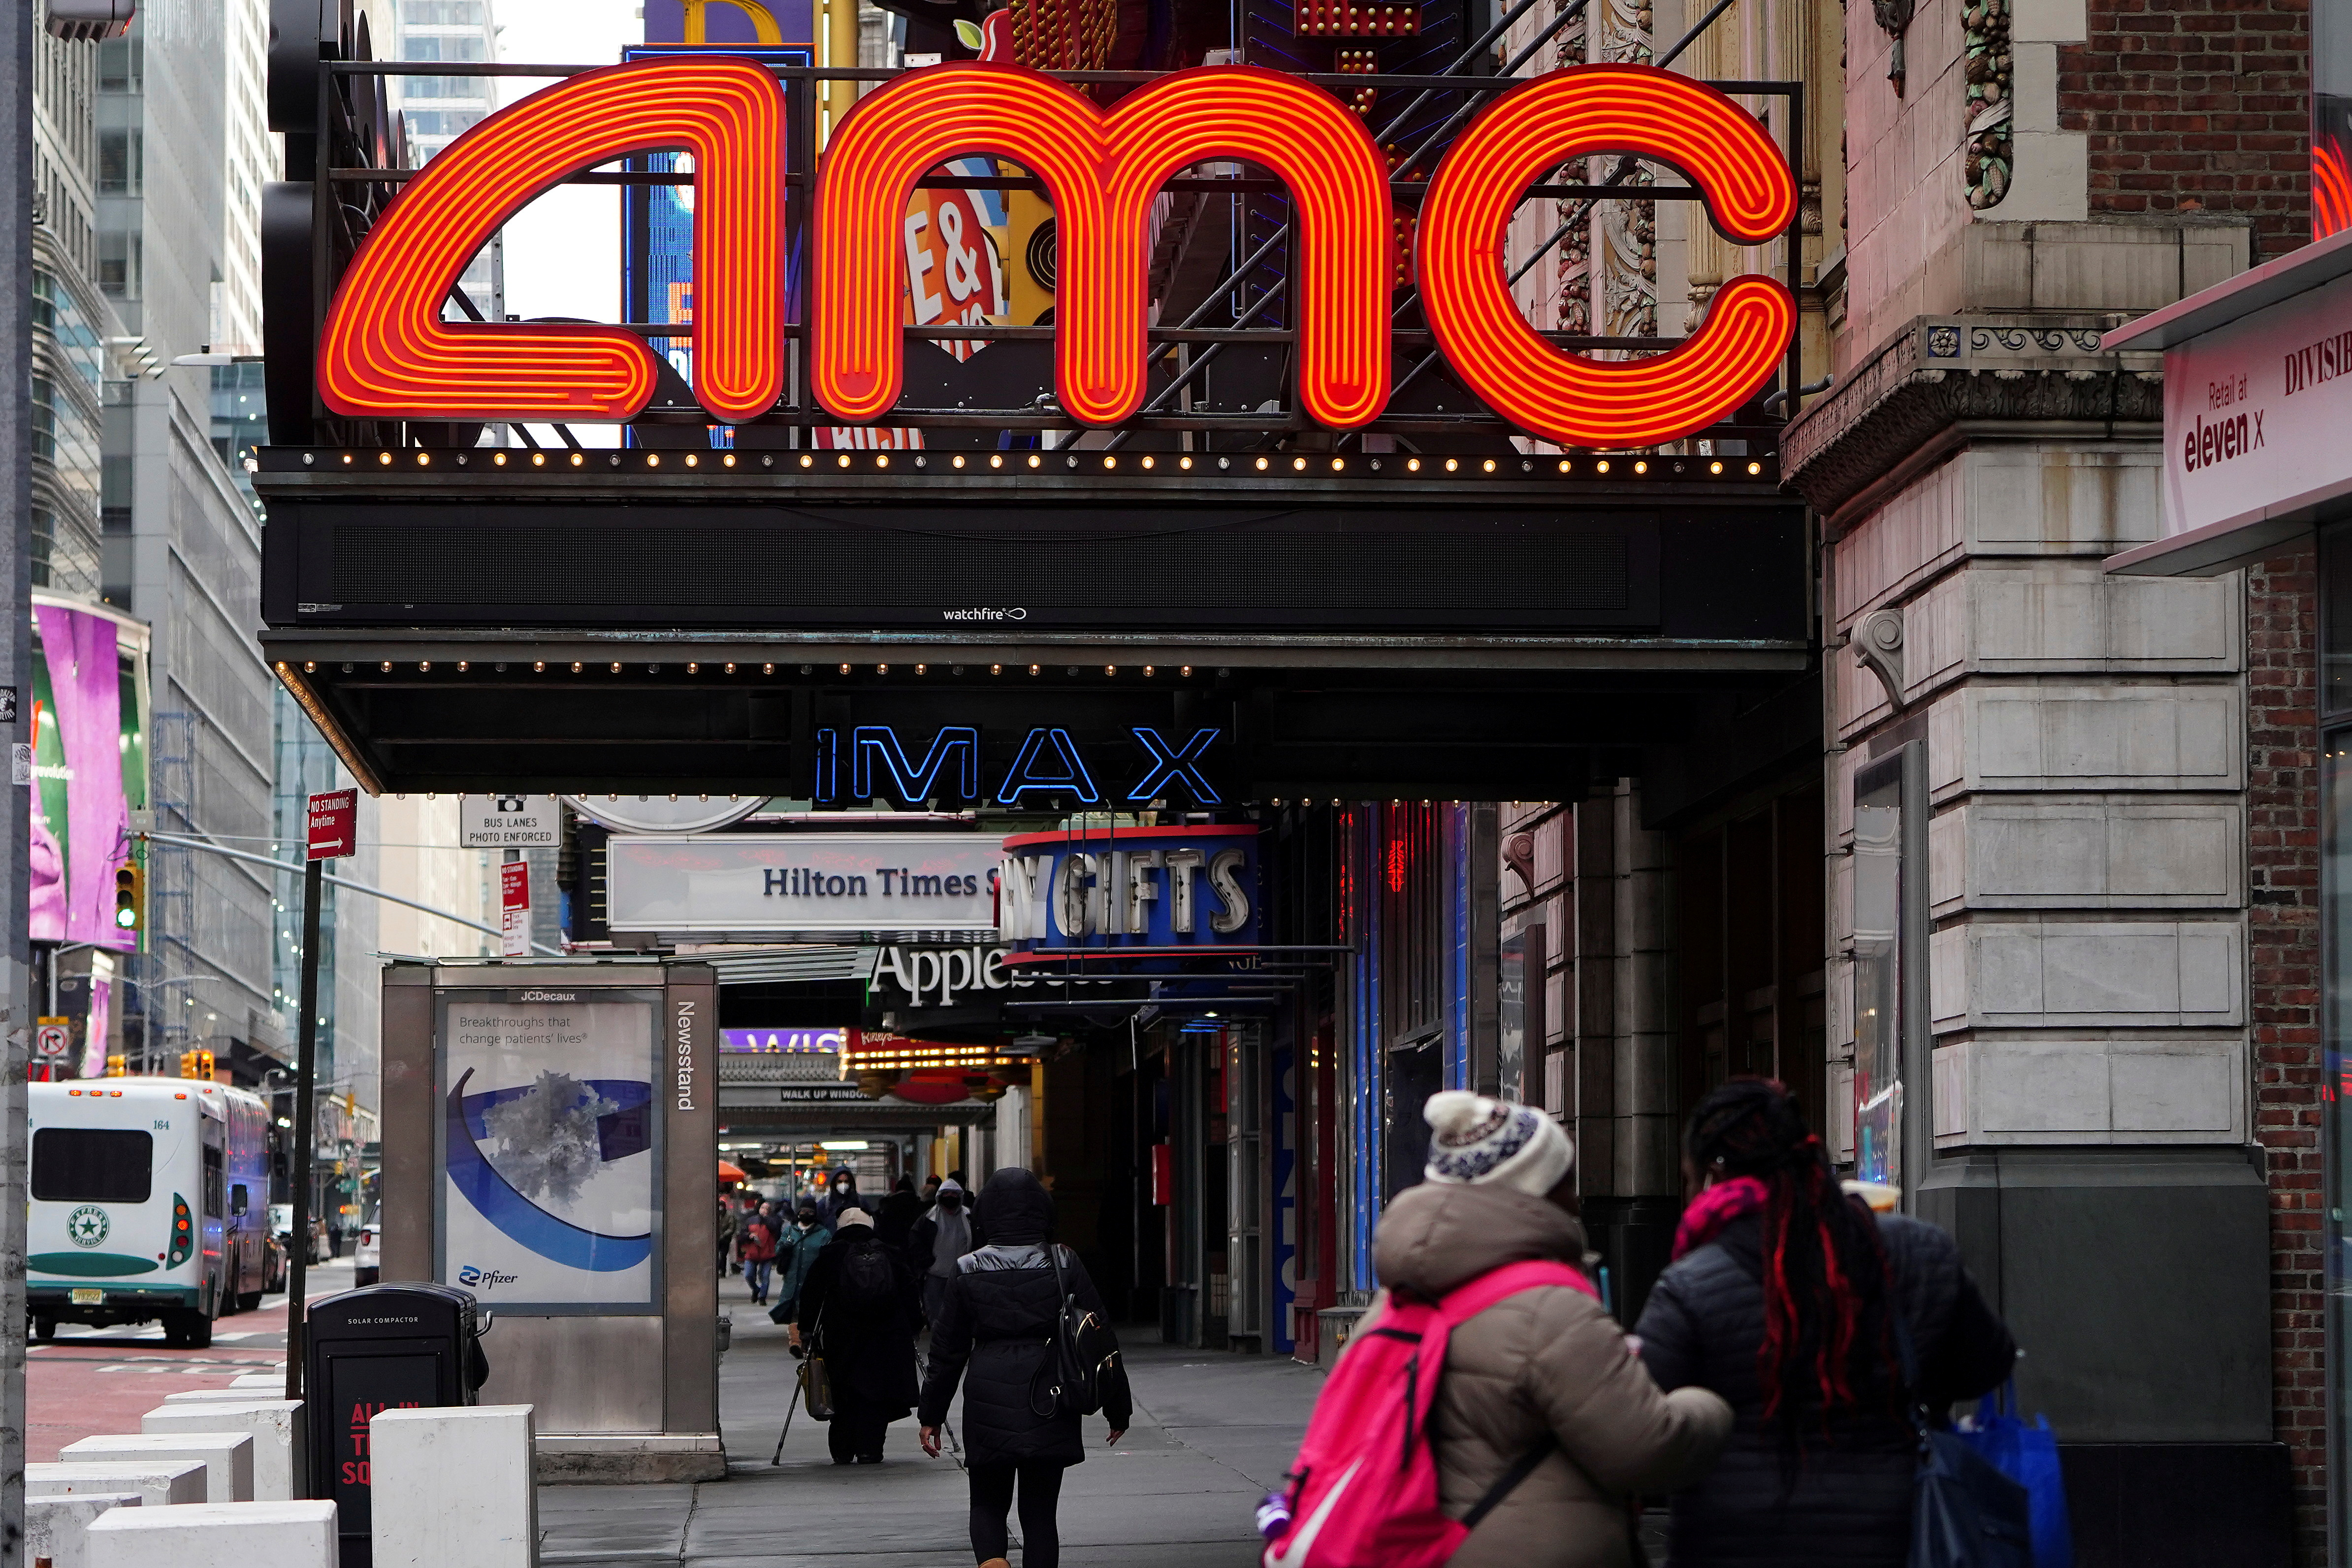 An AMC theatre is pictured amid the coronavirus disease (COVID-19) pandemic in the Manhattan borough of New York City, New York, U.S., January 27, 2021. REUTERS/Carlo Allegri/File Photo